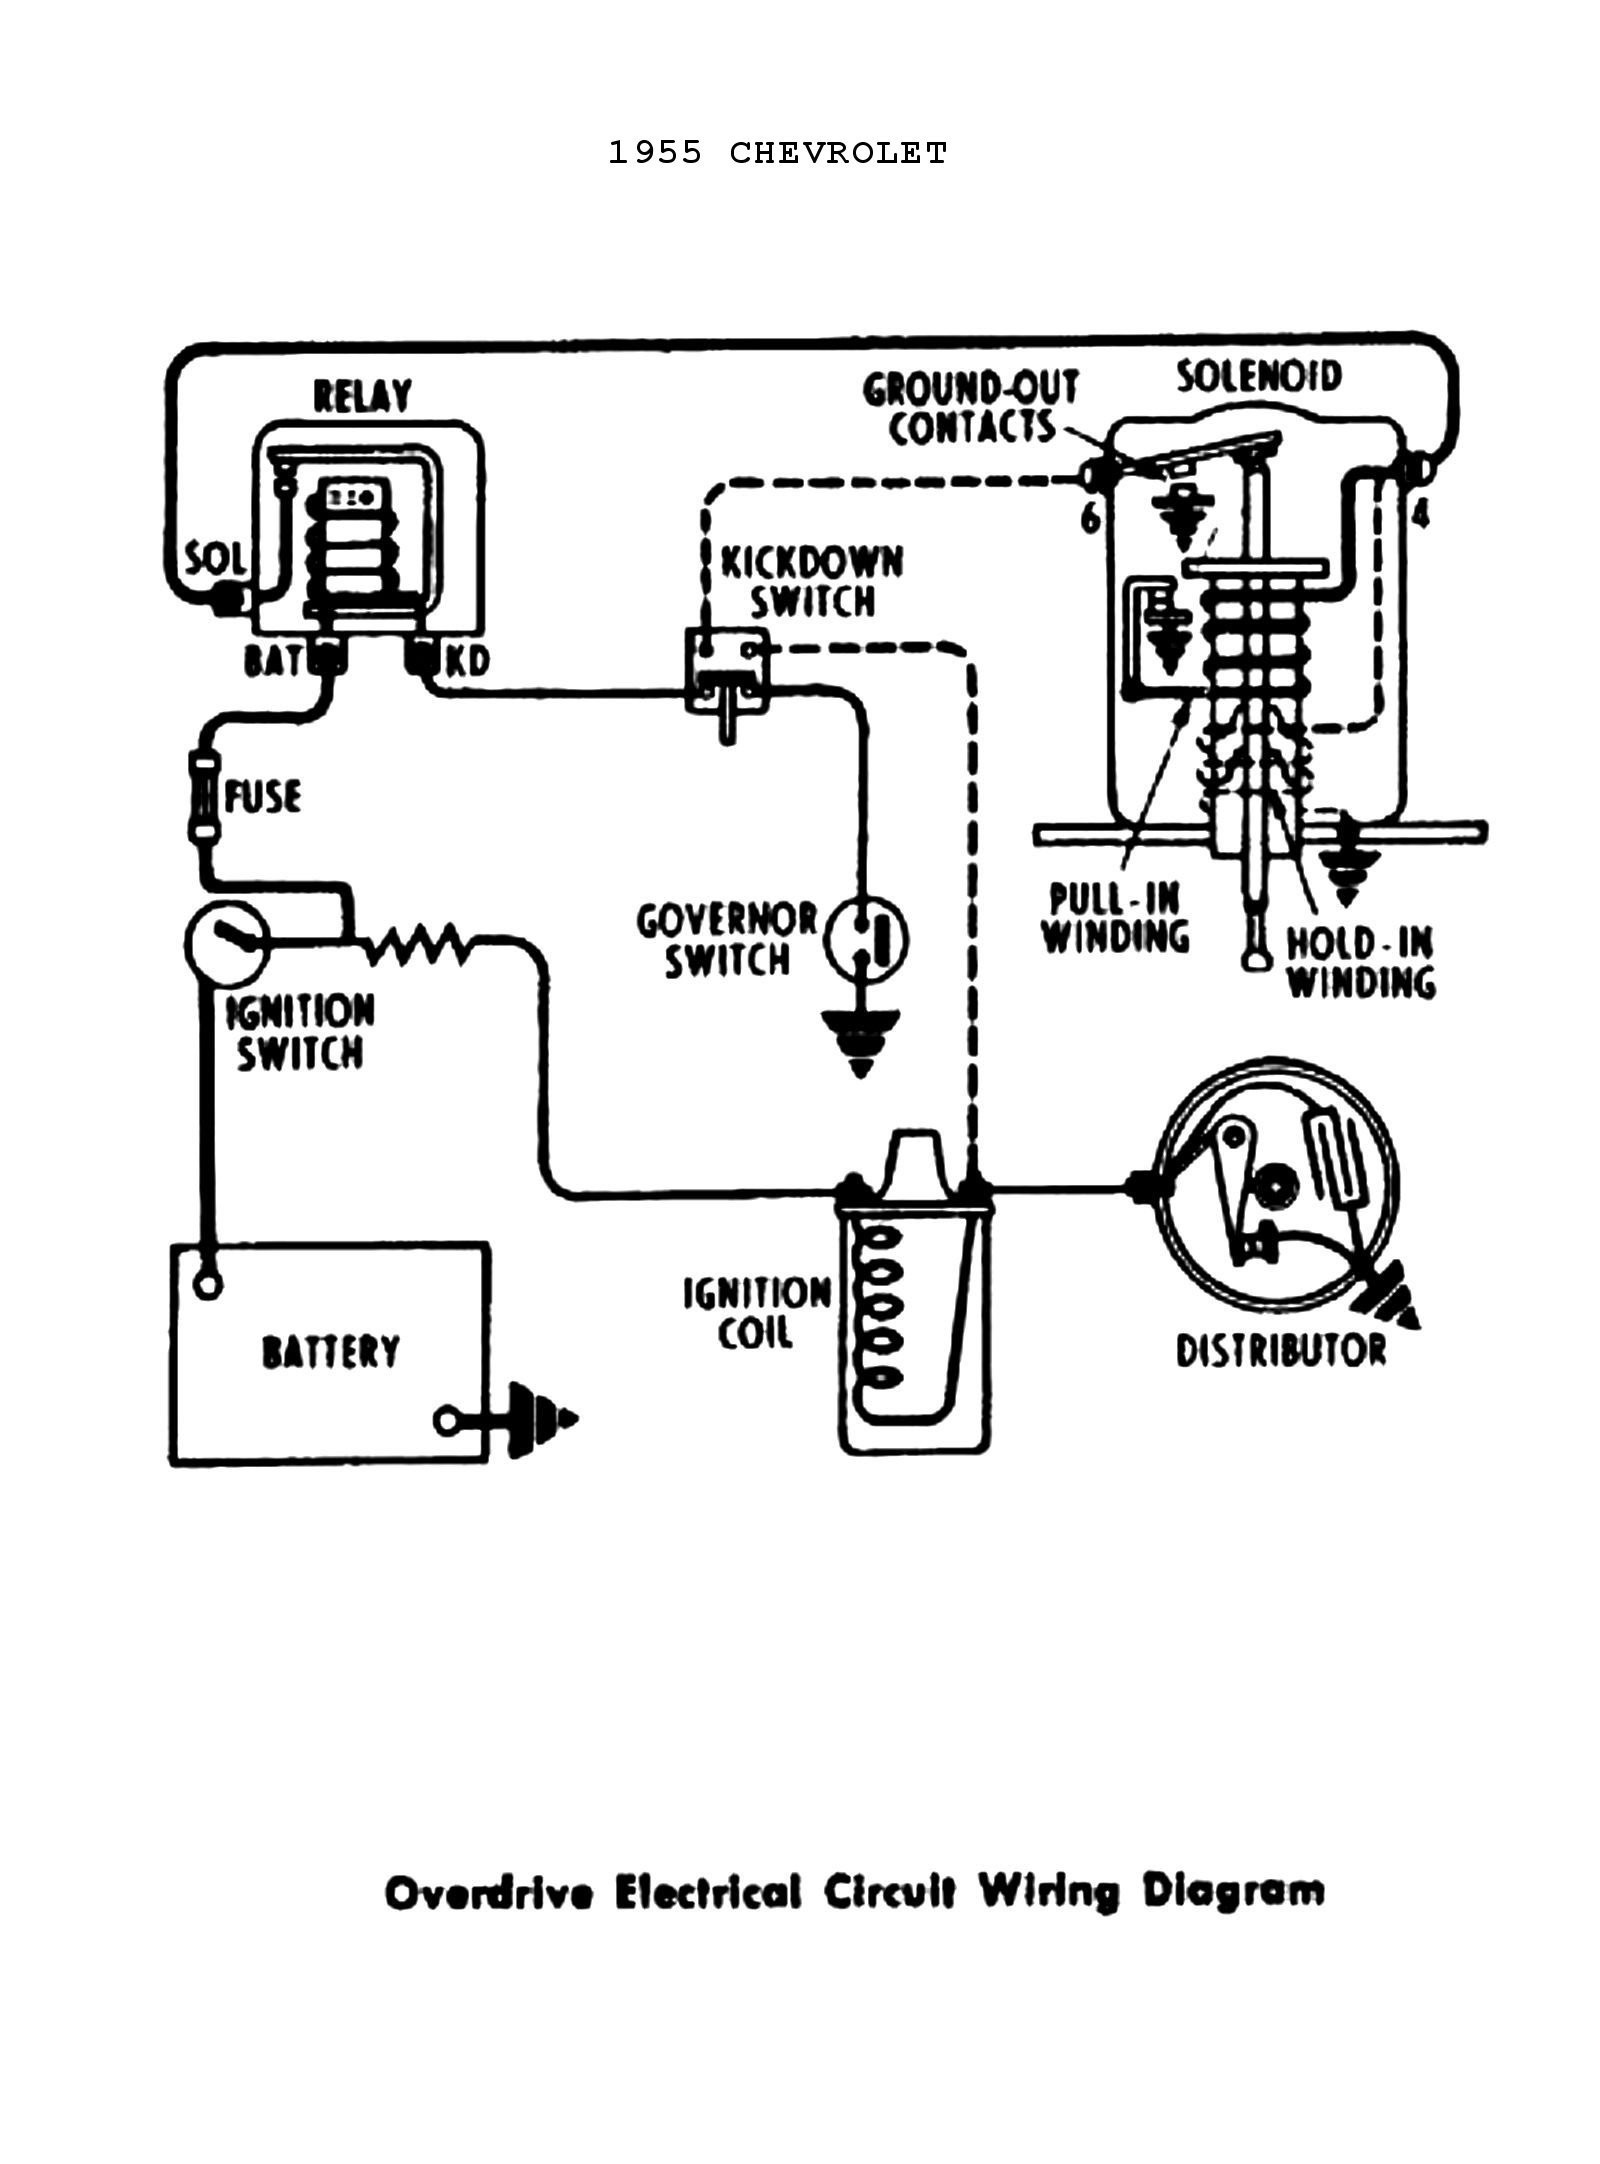 Wiring Diagram Gm Ignition Switch Fresh Car Ignition System Wiring